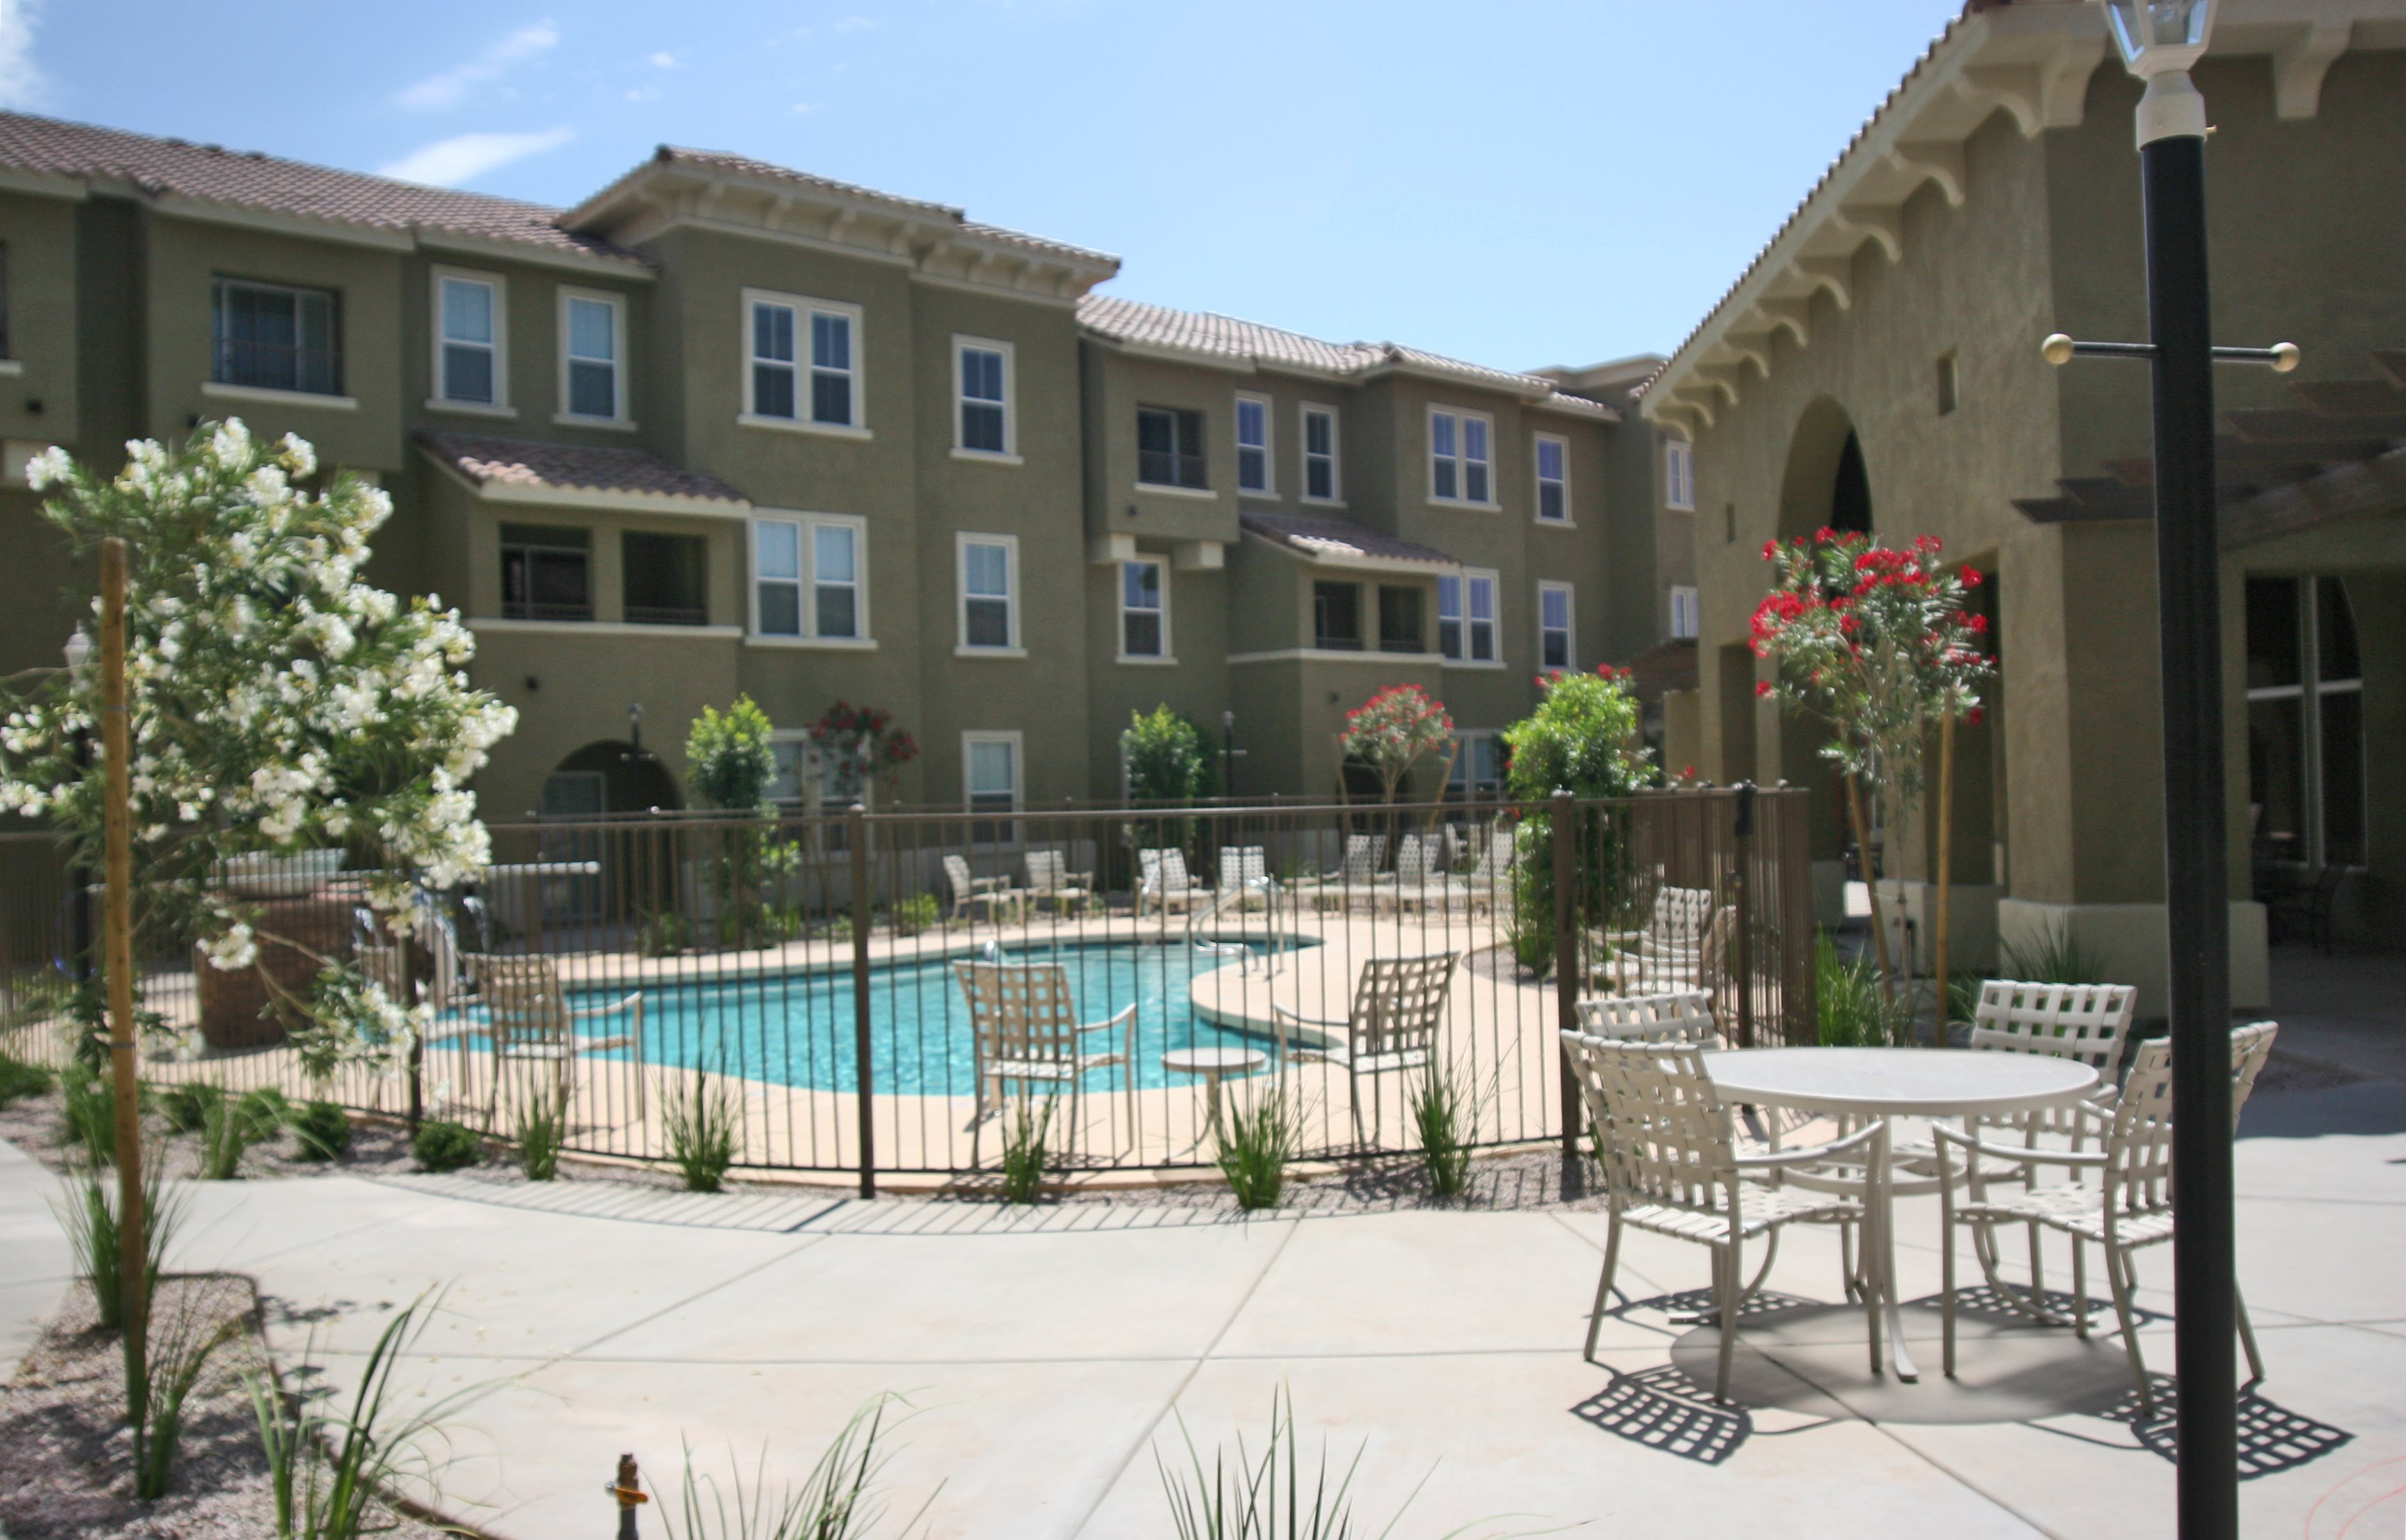 Image of Senior Living at Matthew Henson Apartments in Phoenix, Arizona